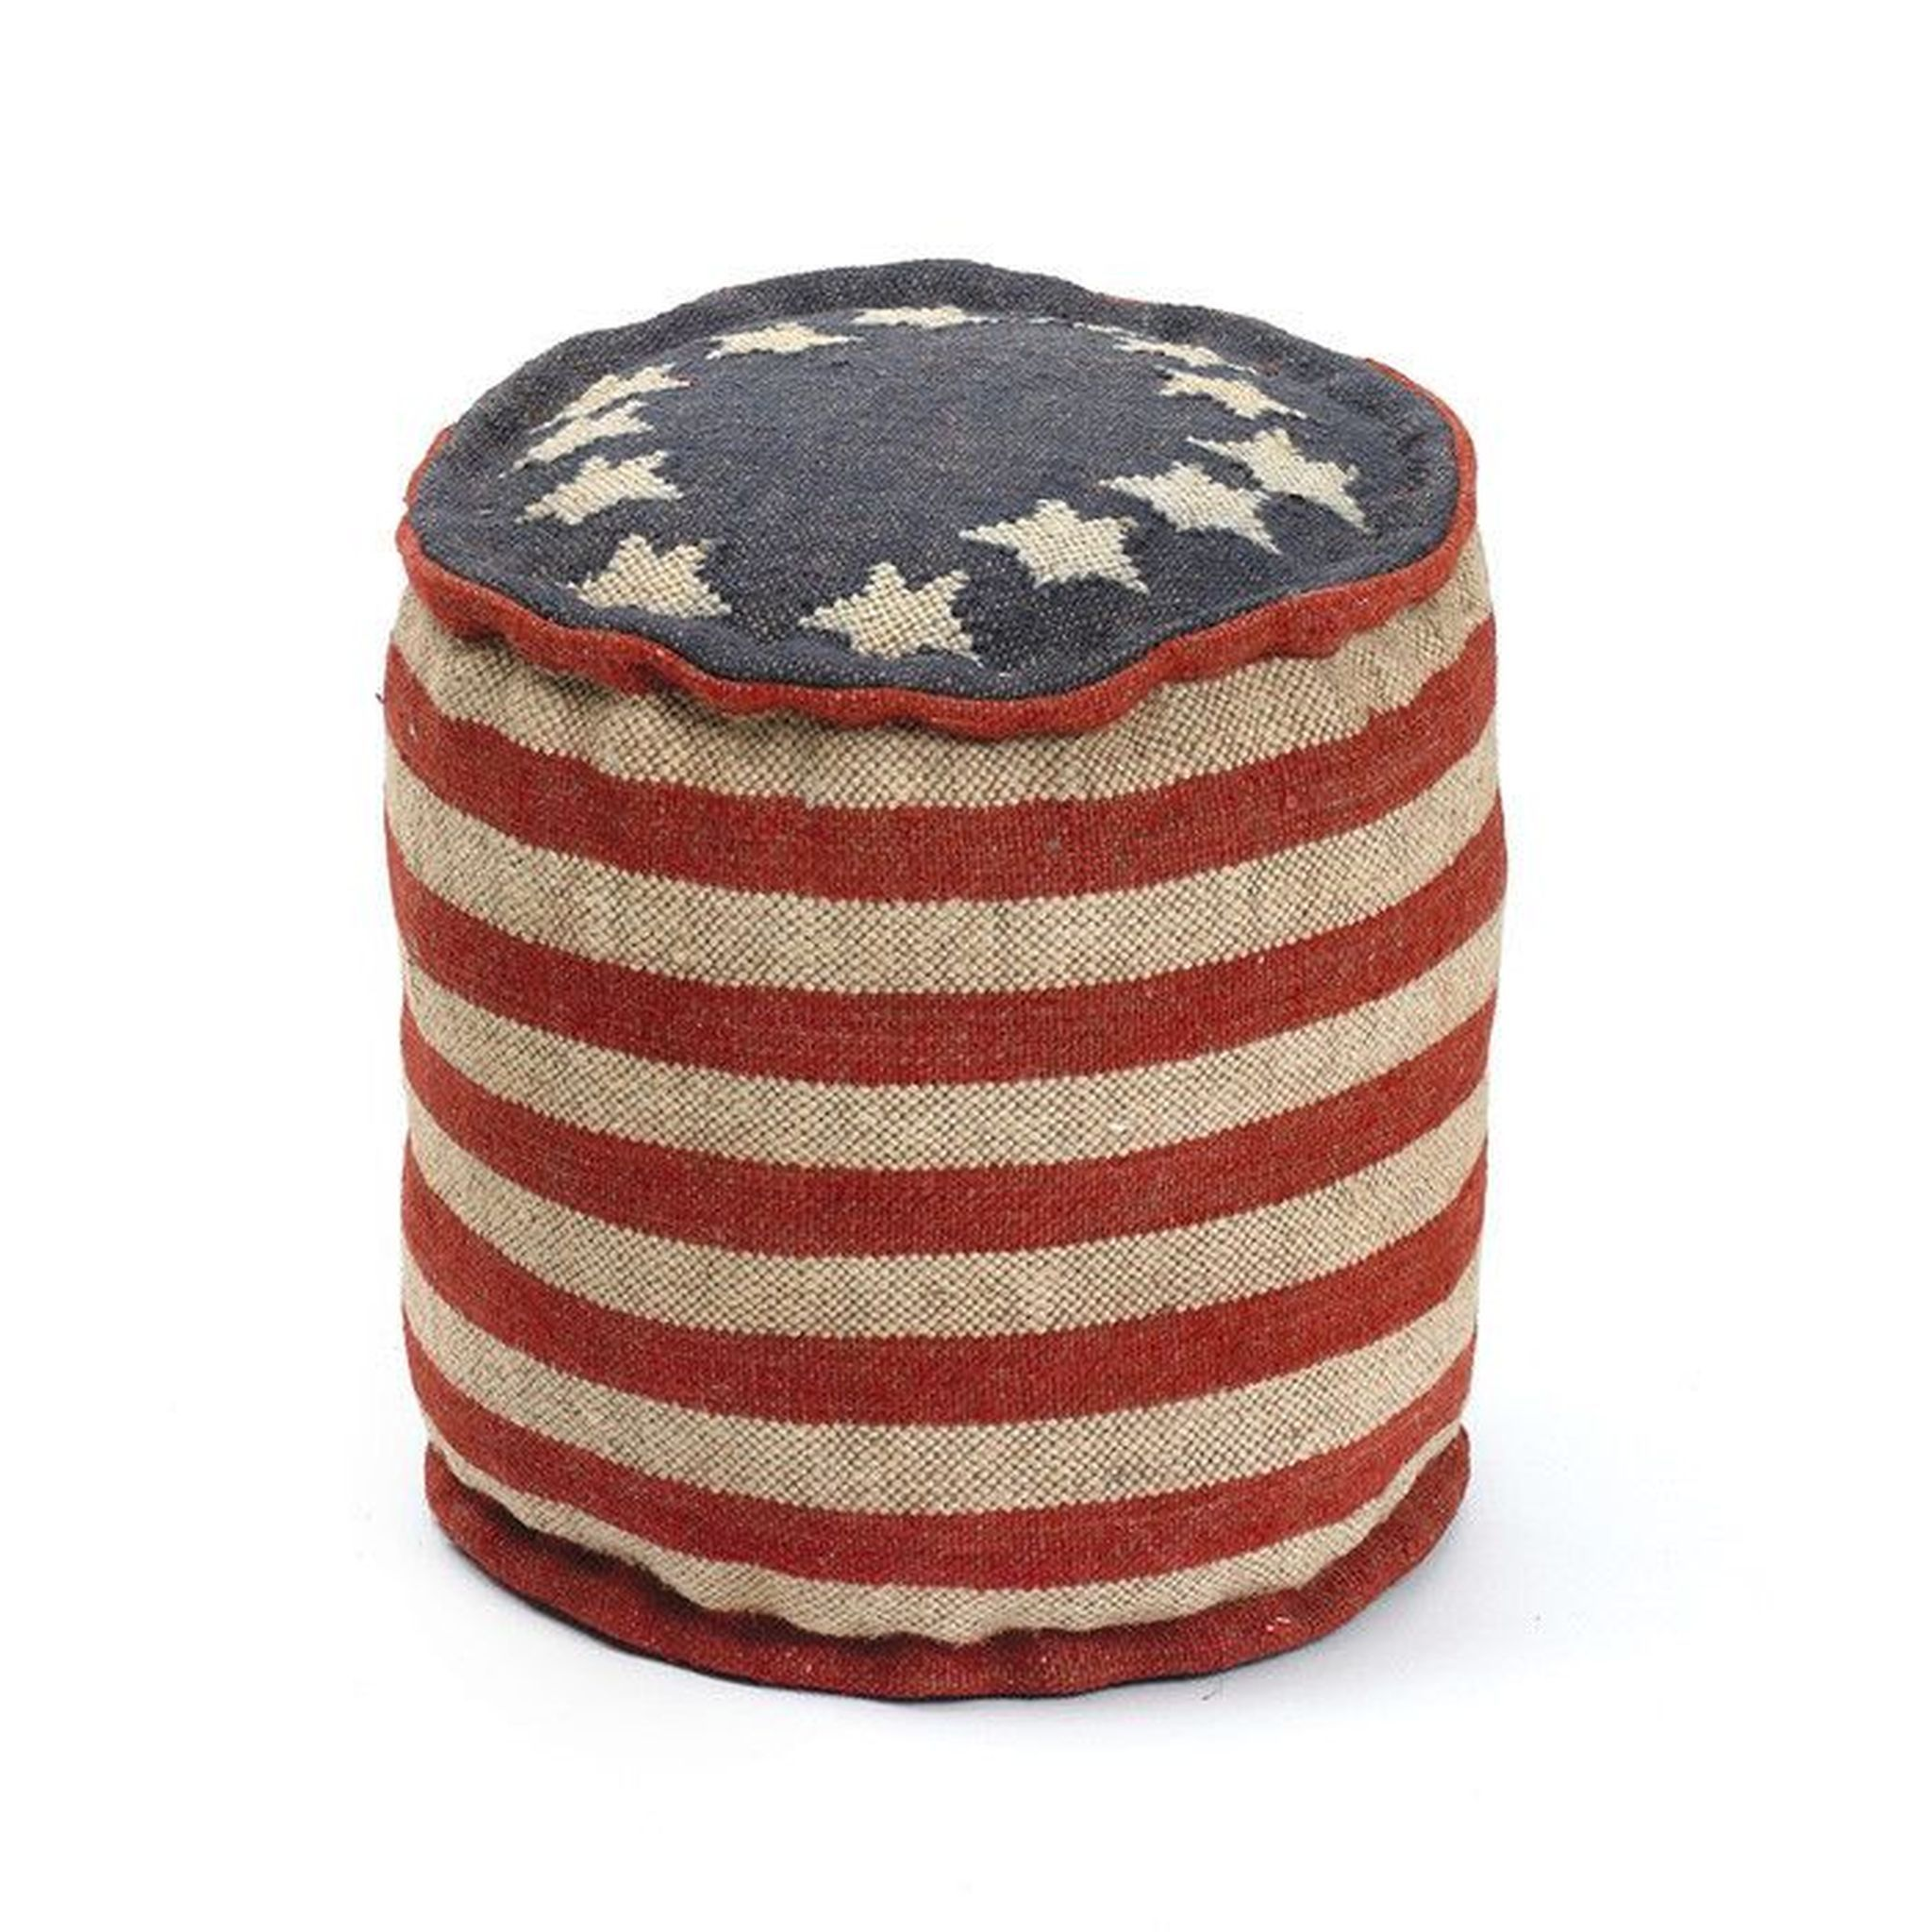 shipping leather today genuine poof garden moroccan product home pouf overstock stuffed ottoman handmade free